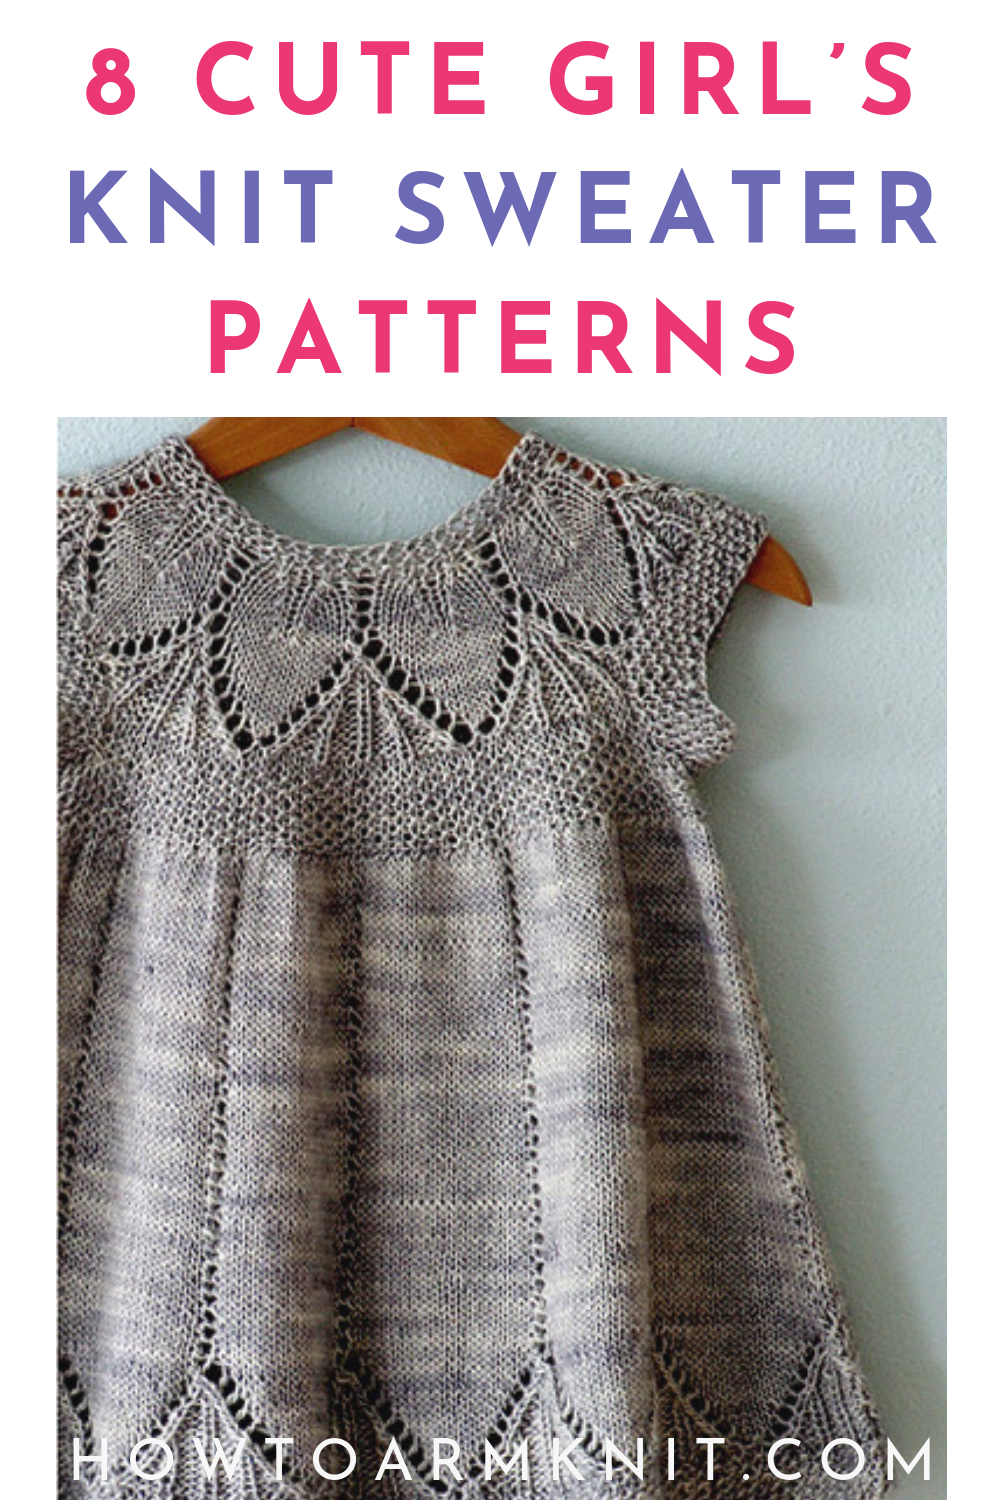 Top 8 Adorable Girl's Knit Sweater Patterns | Happiness is ...